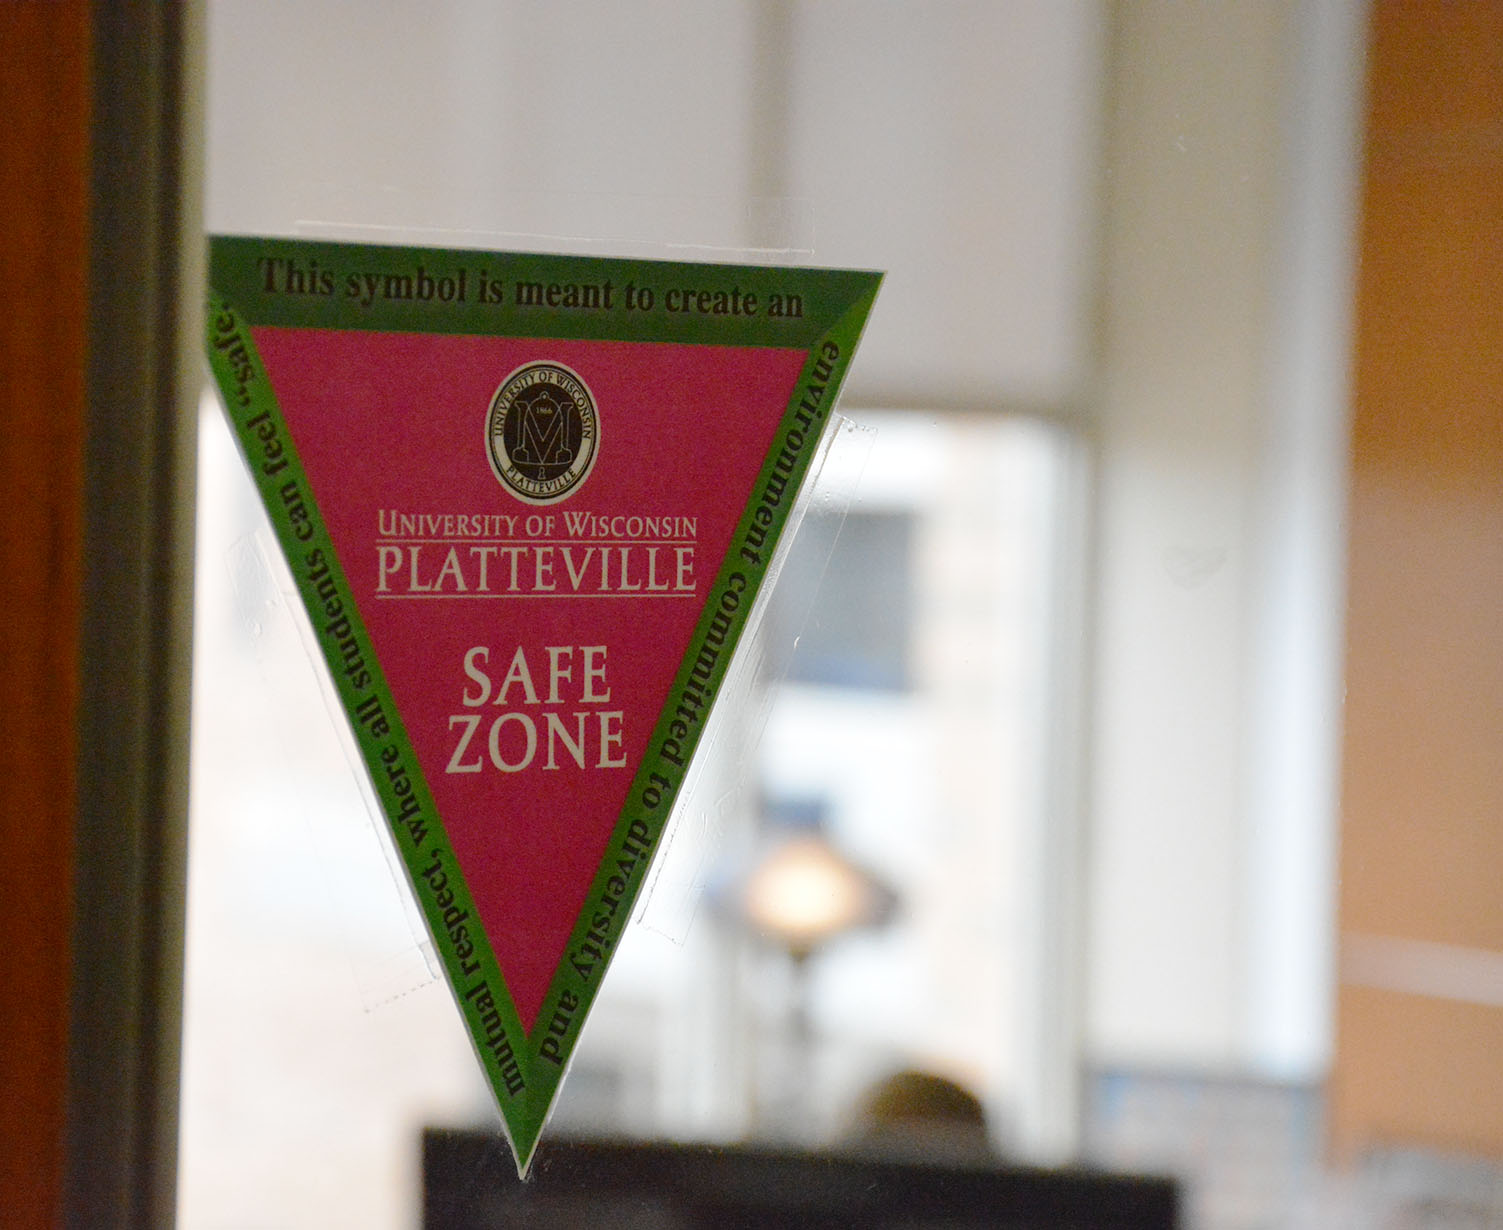 Safe zone triangles can be found across the UW-Platteville's campus, including the Markee Pioneer Student Center.